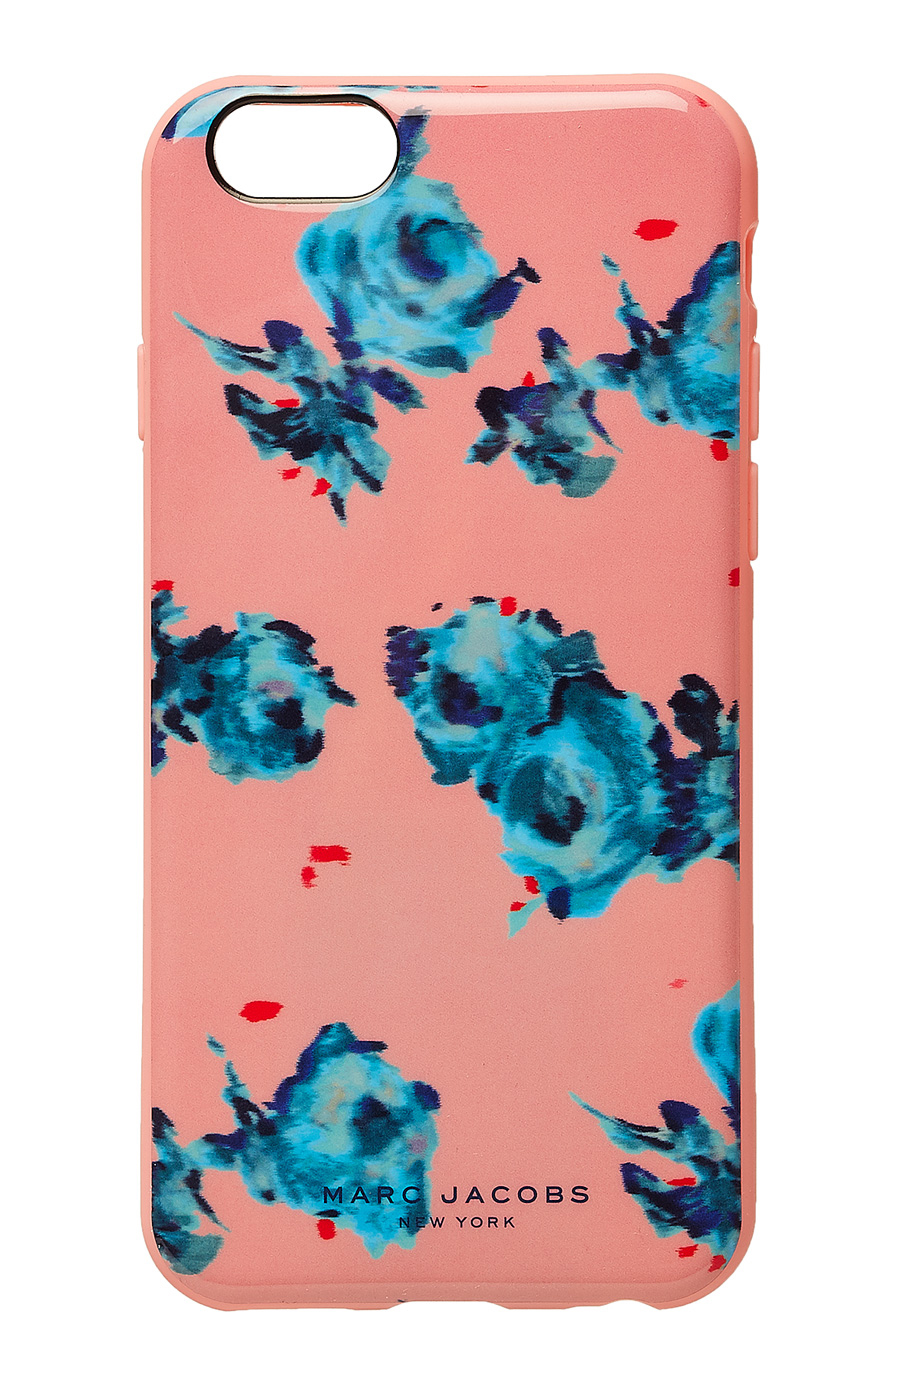 MARC JACOBS FLORAL IPHONE 6S CASE